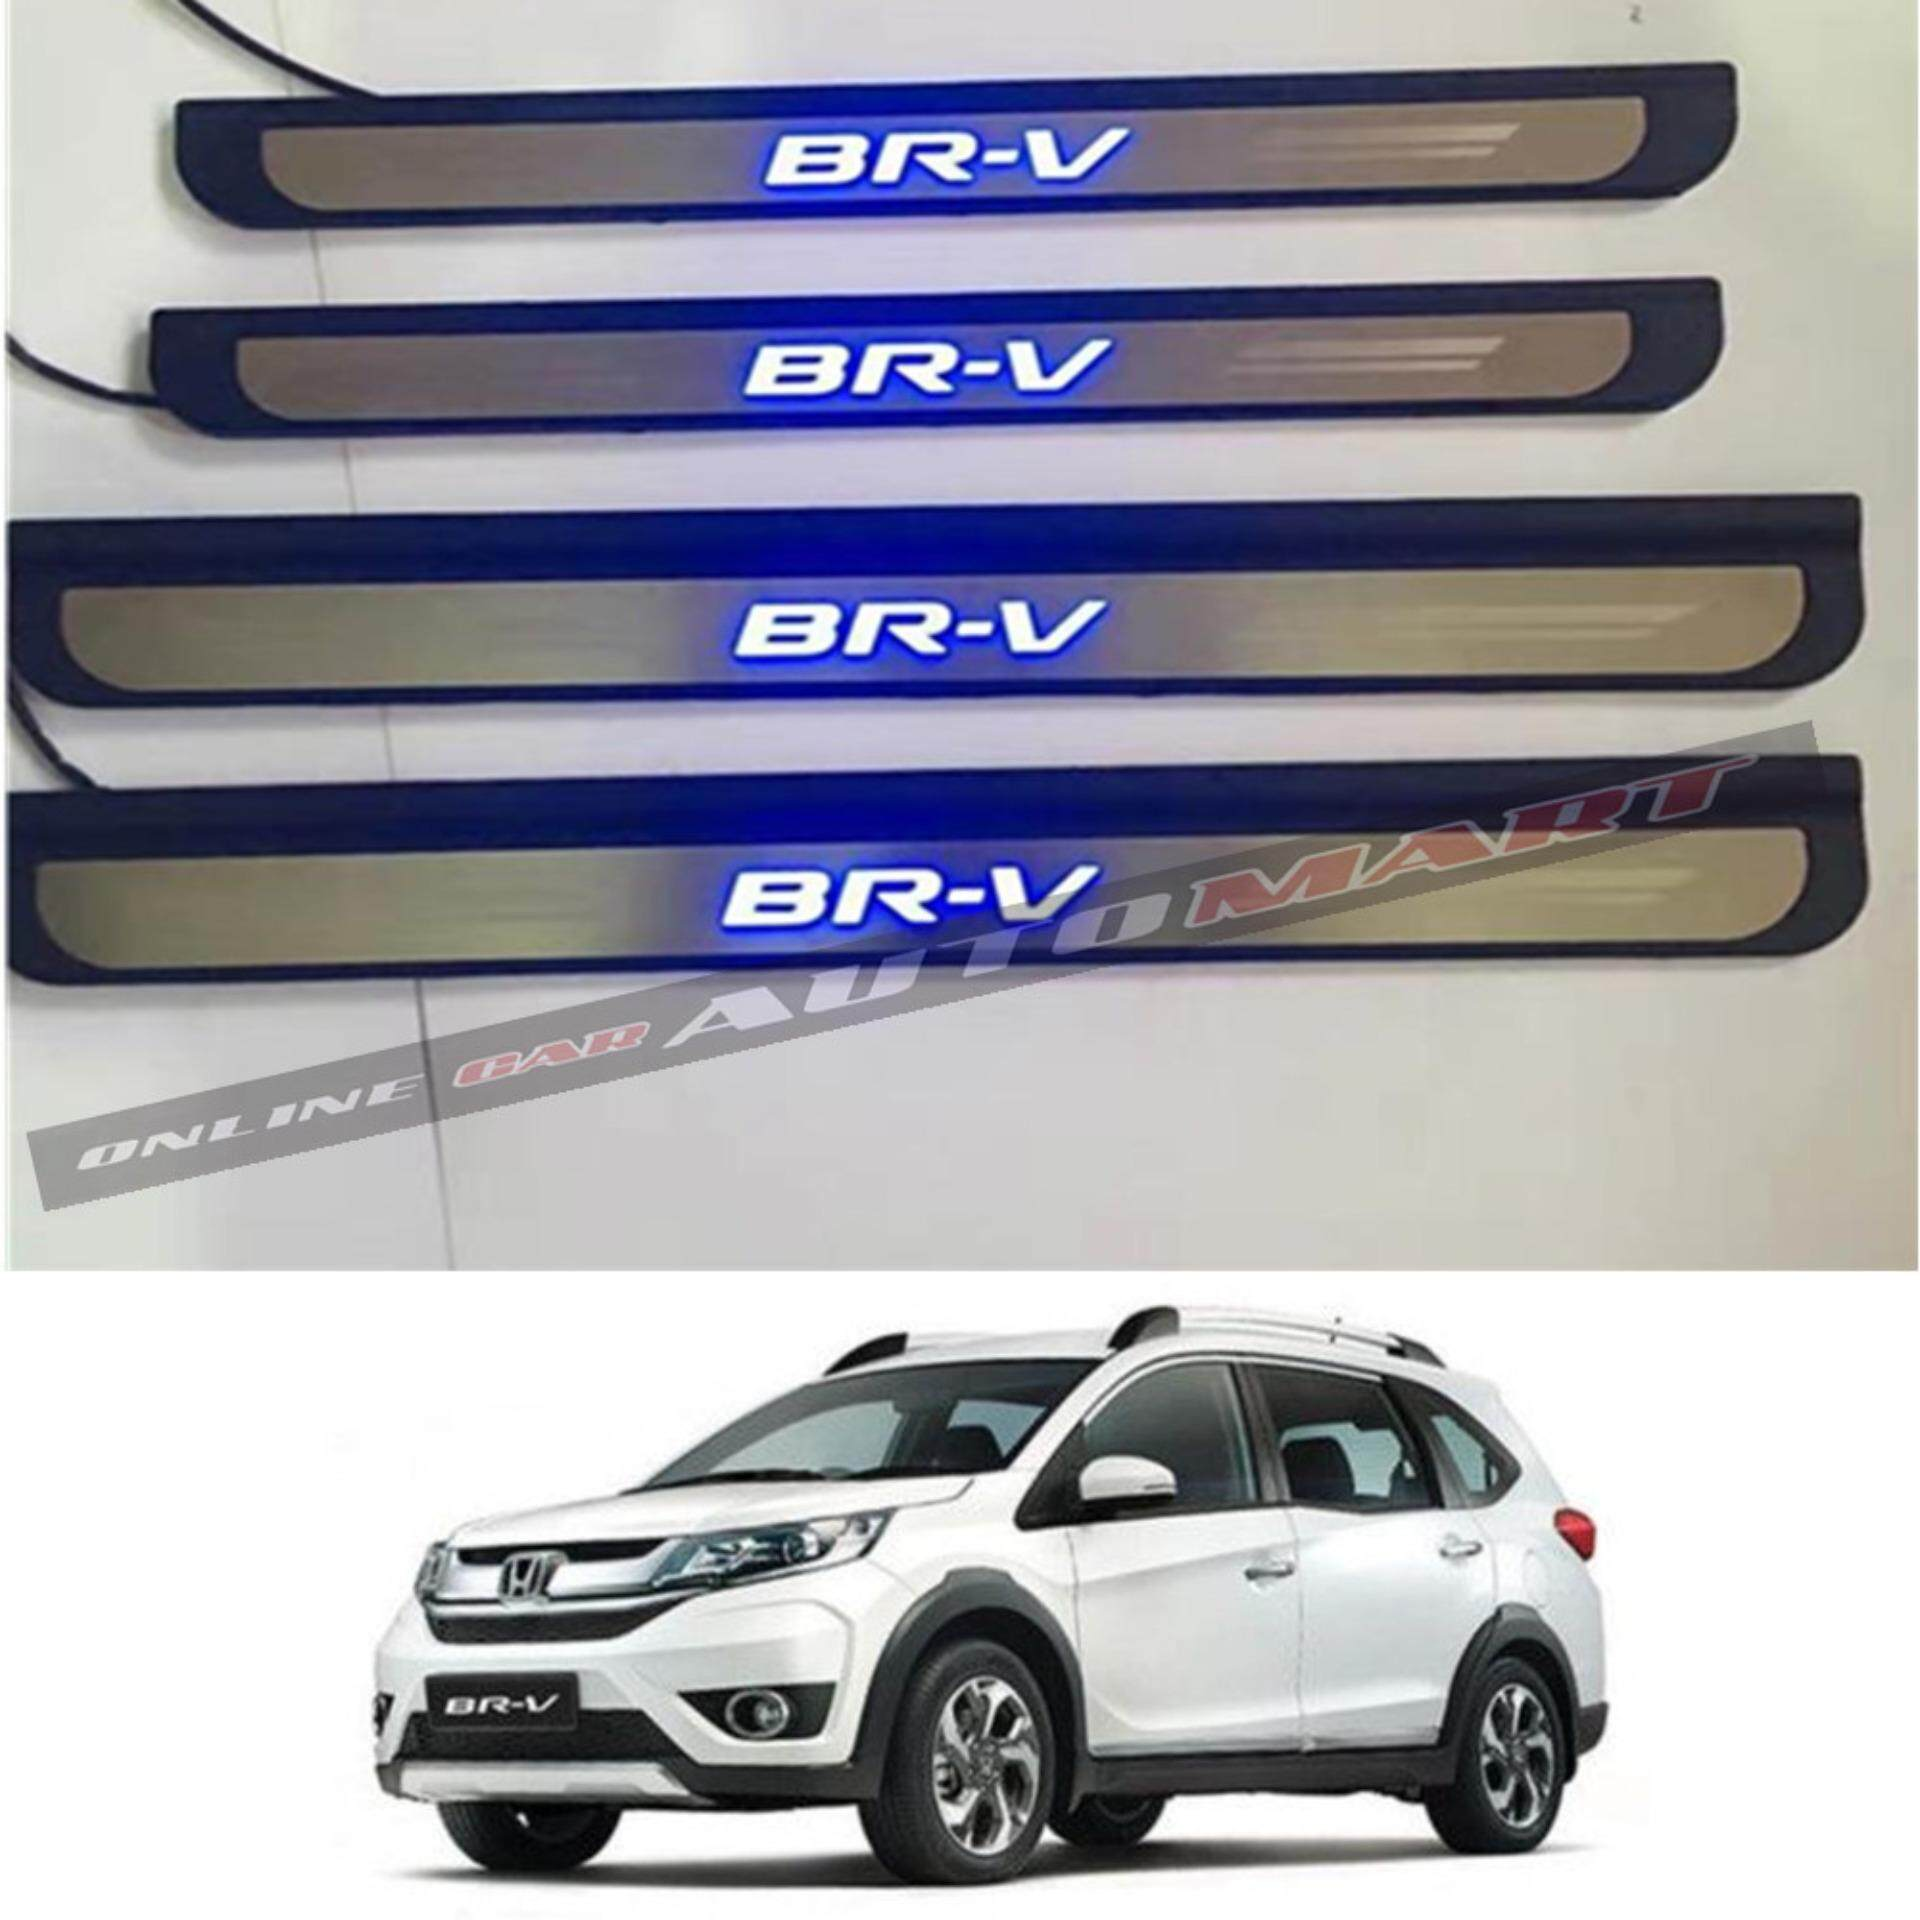 Honda BRV Plug and Play Side Steel Plate/Door Side Step With Led Blue